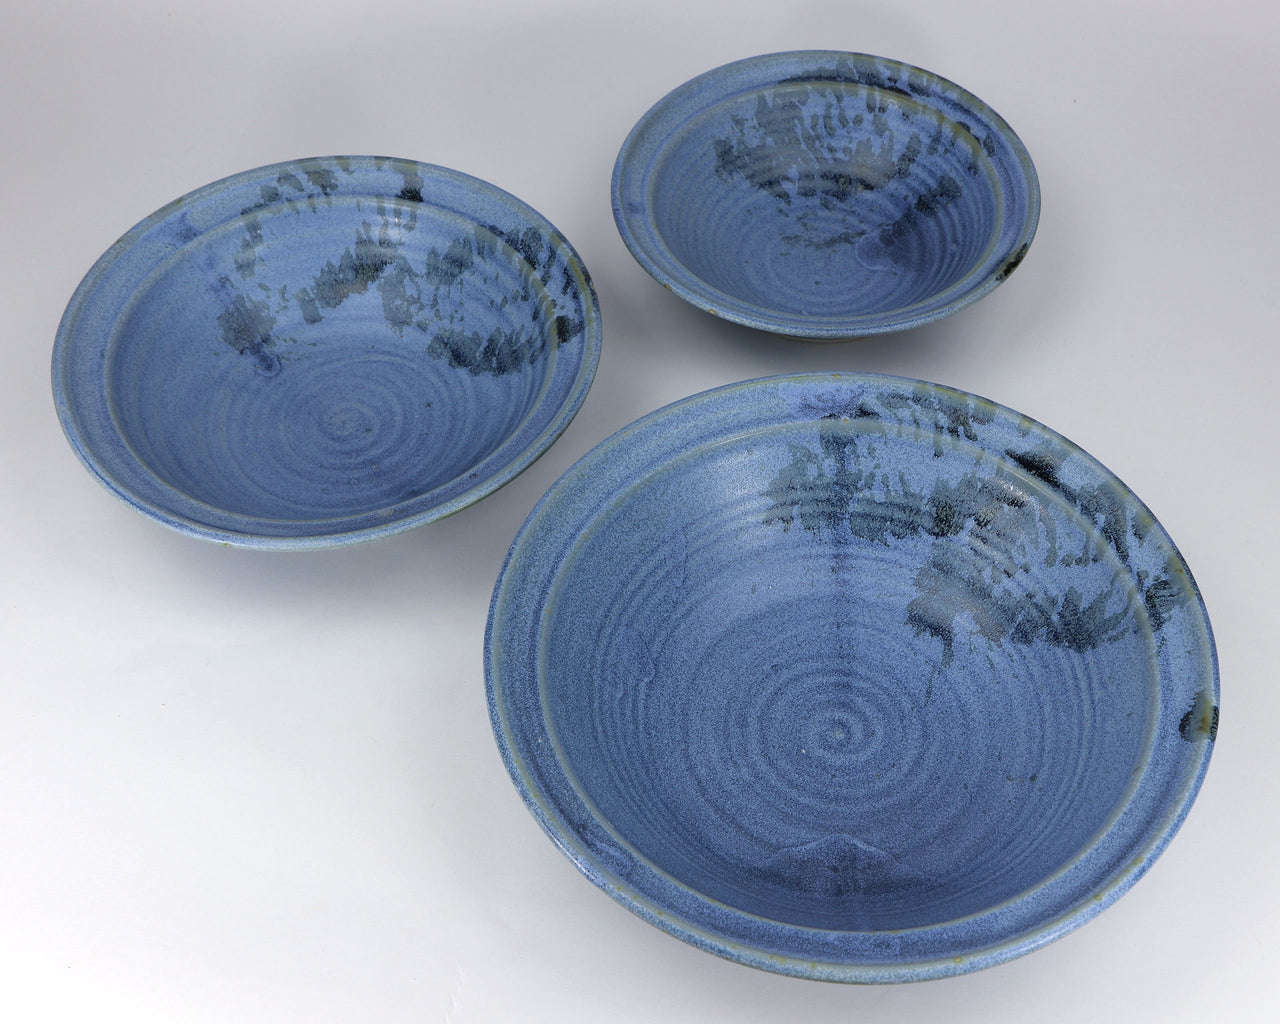 3-piece porcelain serving bowl set in a subtle leaf-printed botanical pattern and striking glaze colors. Approximately 26 ounces in volume, chip-resistant, oven- and dishwasher-safe. Each piece is unique--shape, size and color will vary.